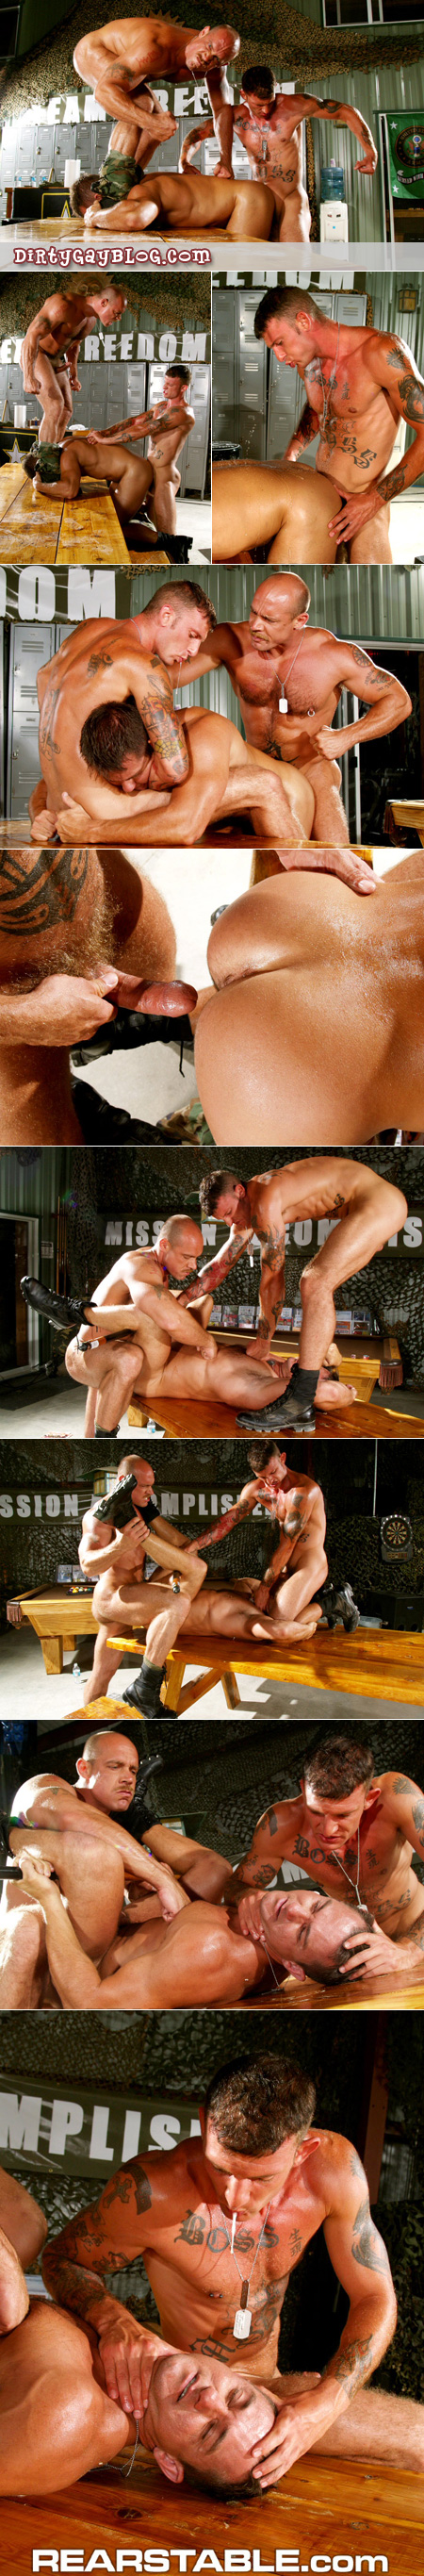 Military muscle bottom humiliated, spit on and force fucked